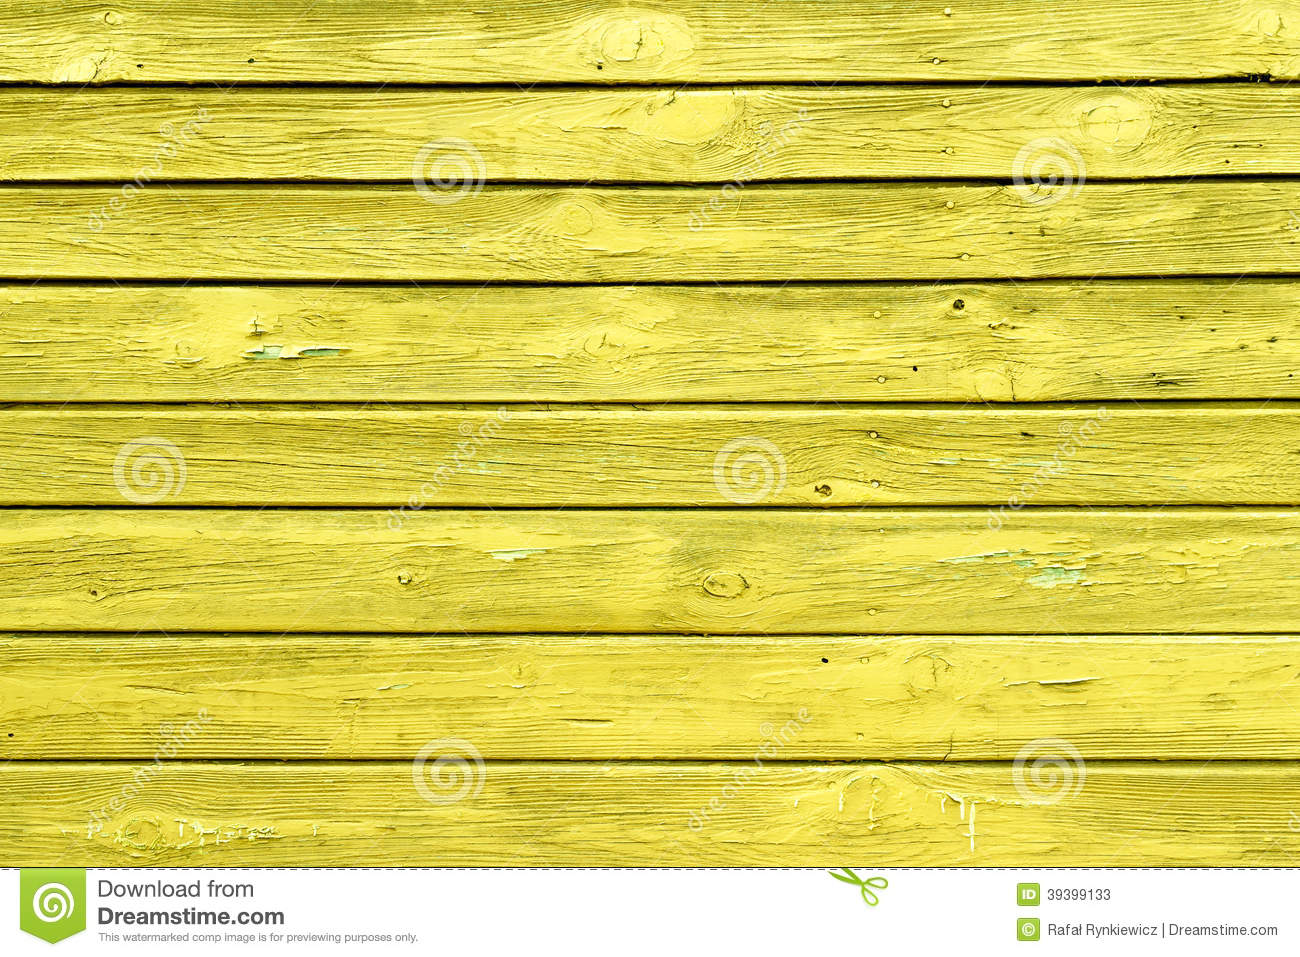 The Yellow Wood Texture With Natural Patterns Stock Photo - Image ...